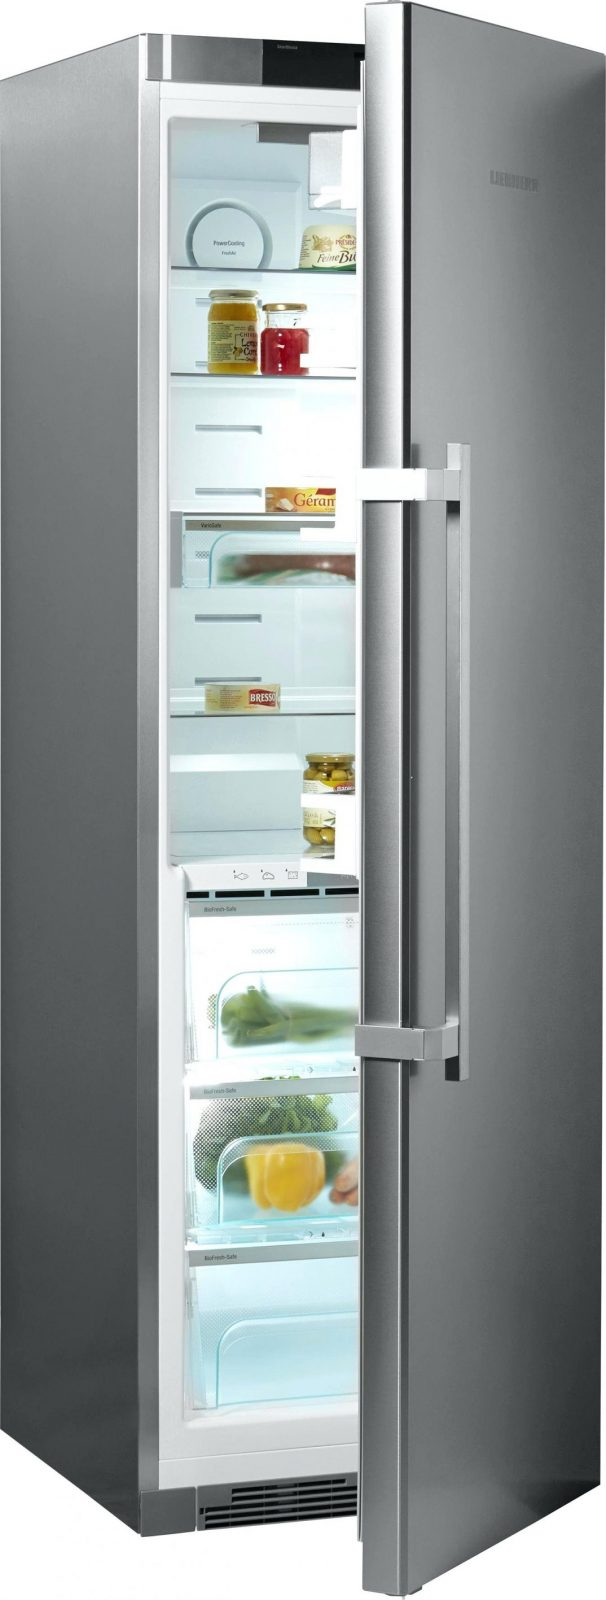 Kbies 4350 Premium Biofresh K Black With Discount Fridge 1 L von Liebherr Kbies 4350 Premium Biofresh Bild